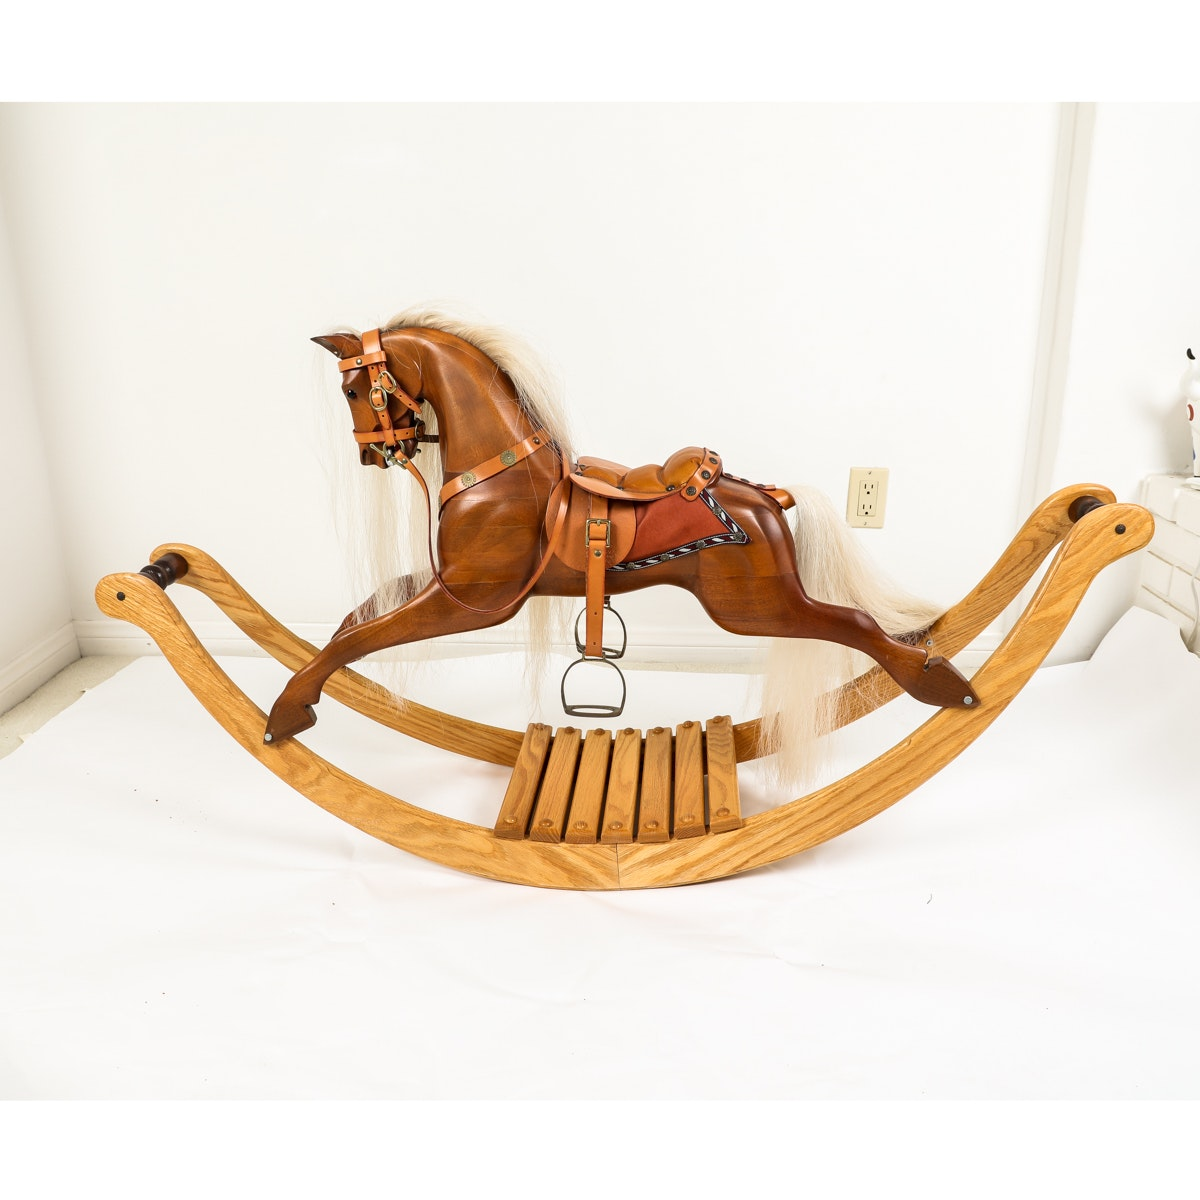 Hand-carved Wooden Rocking Horse